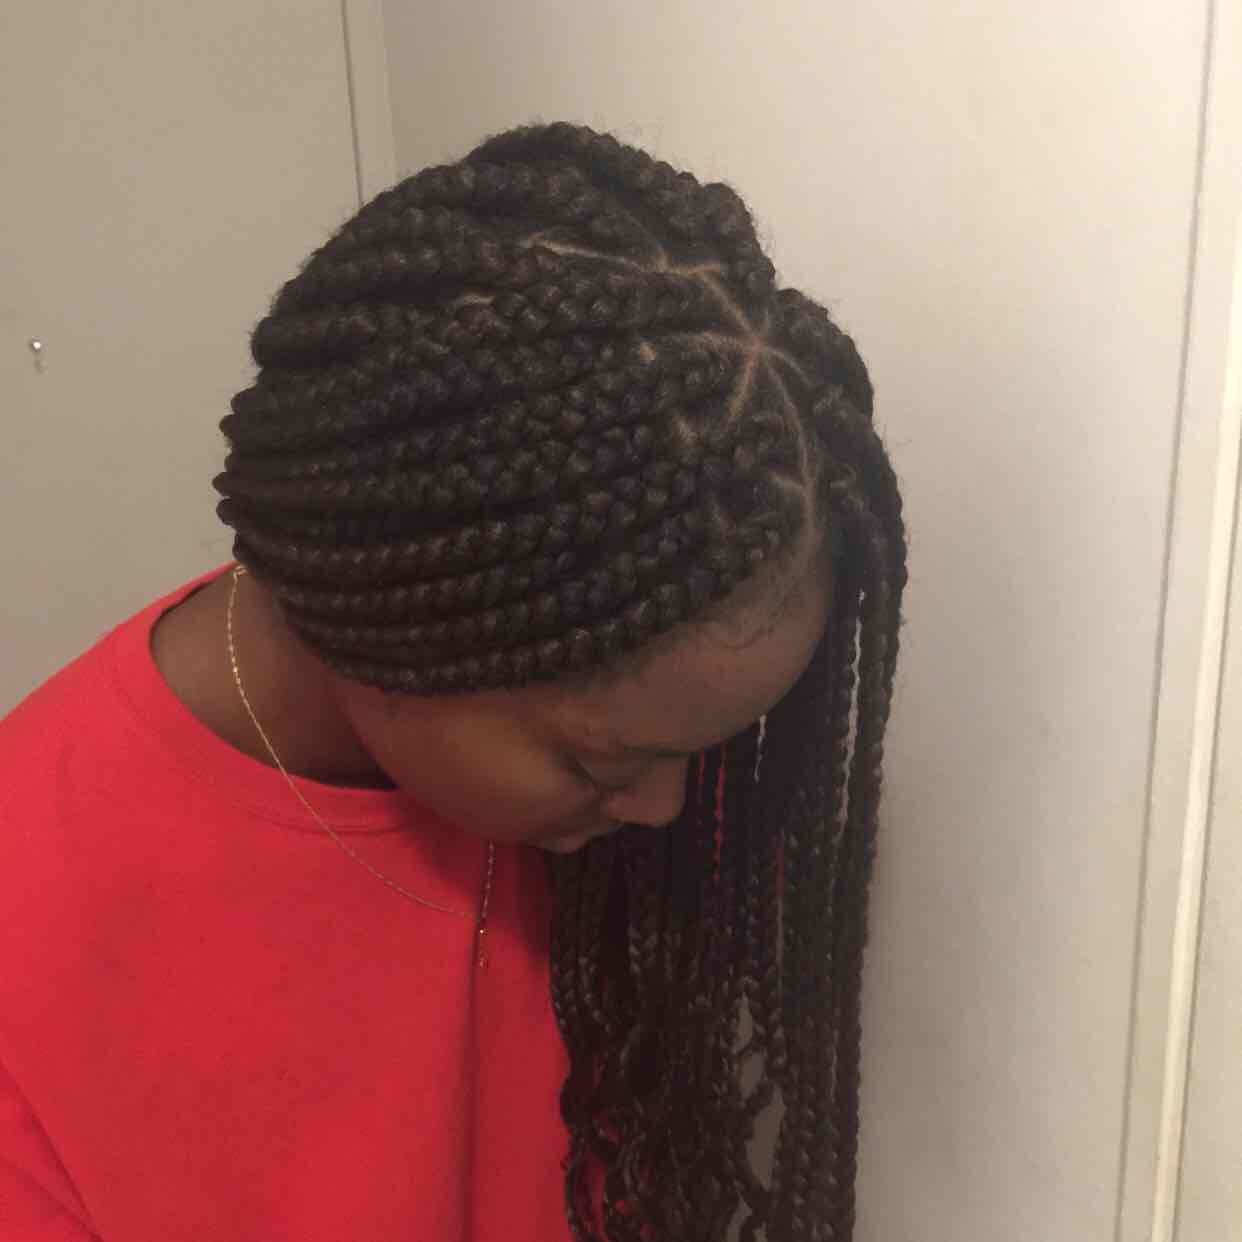 salon de coiffure afro tresse tresses box braids crochet braids vanilles tissages paris 75 77 78 91 92 93 94 95 LTNZPAQW